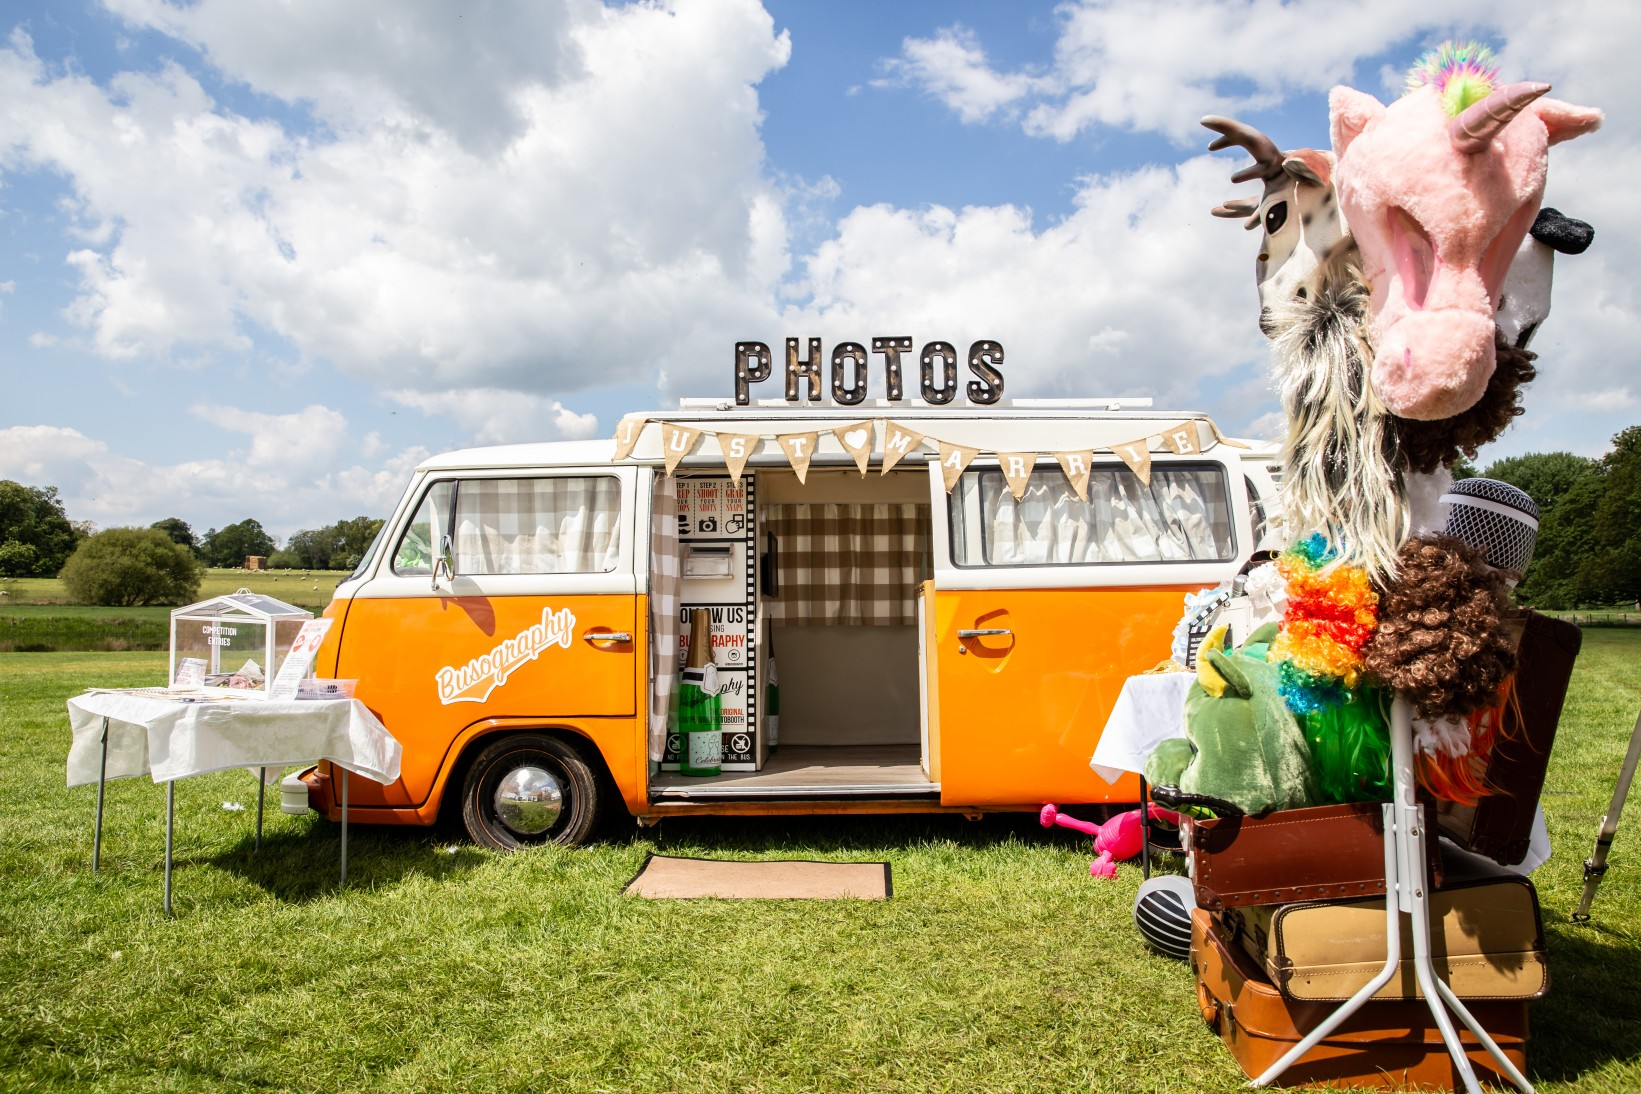 Festival wedding - Unconventional Wedding Festival - Busography - Lumiere wedding photography - photo booth - wedding photo booth (2)